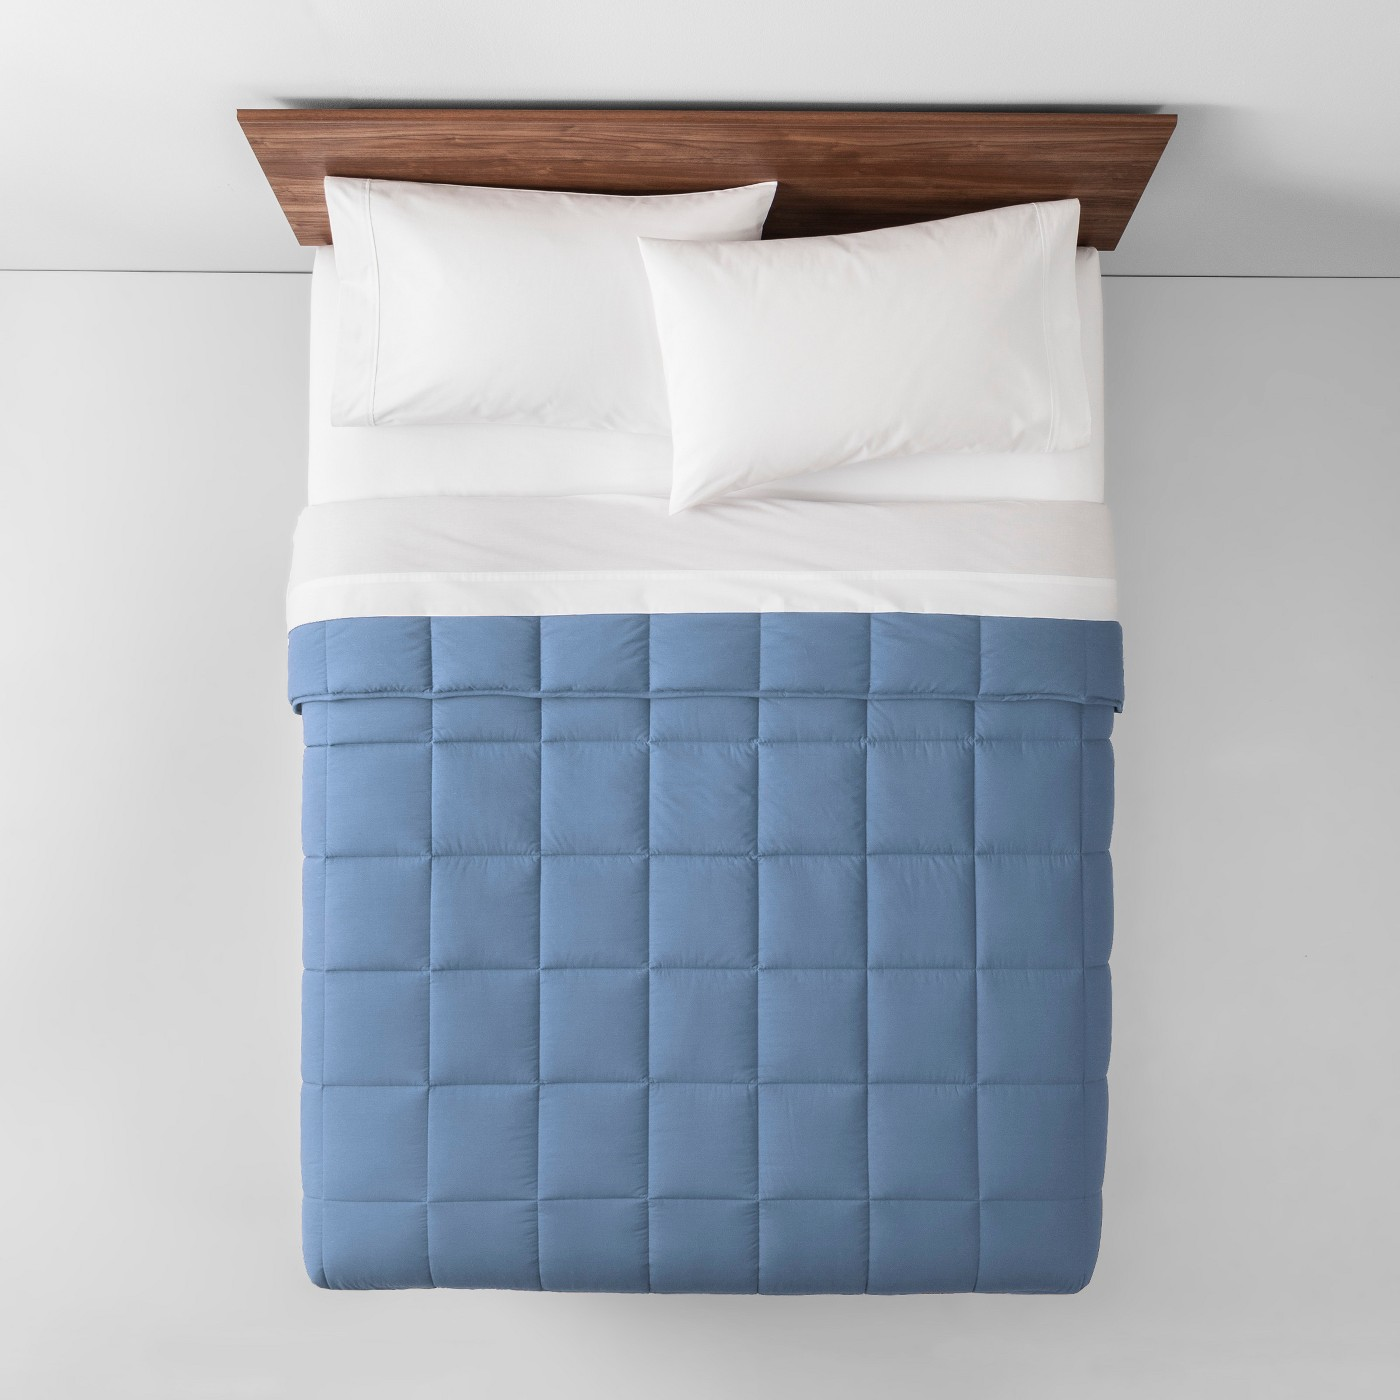 College packing list, cozy blue comforter bedding